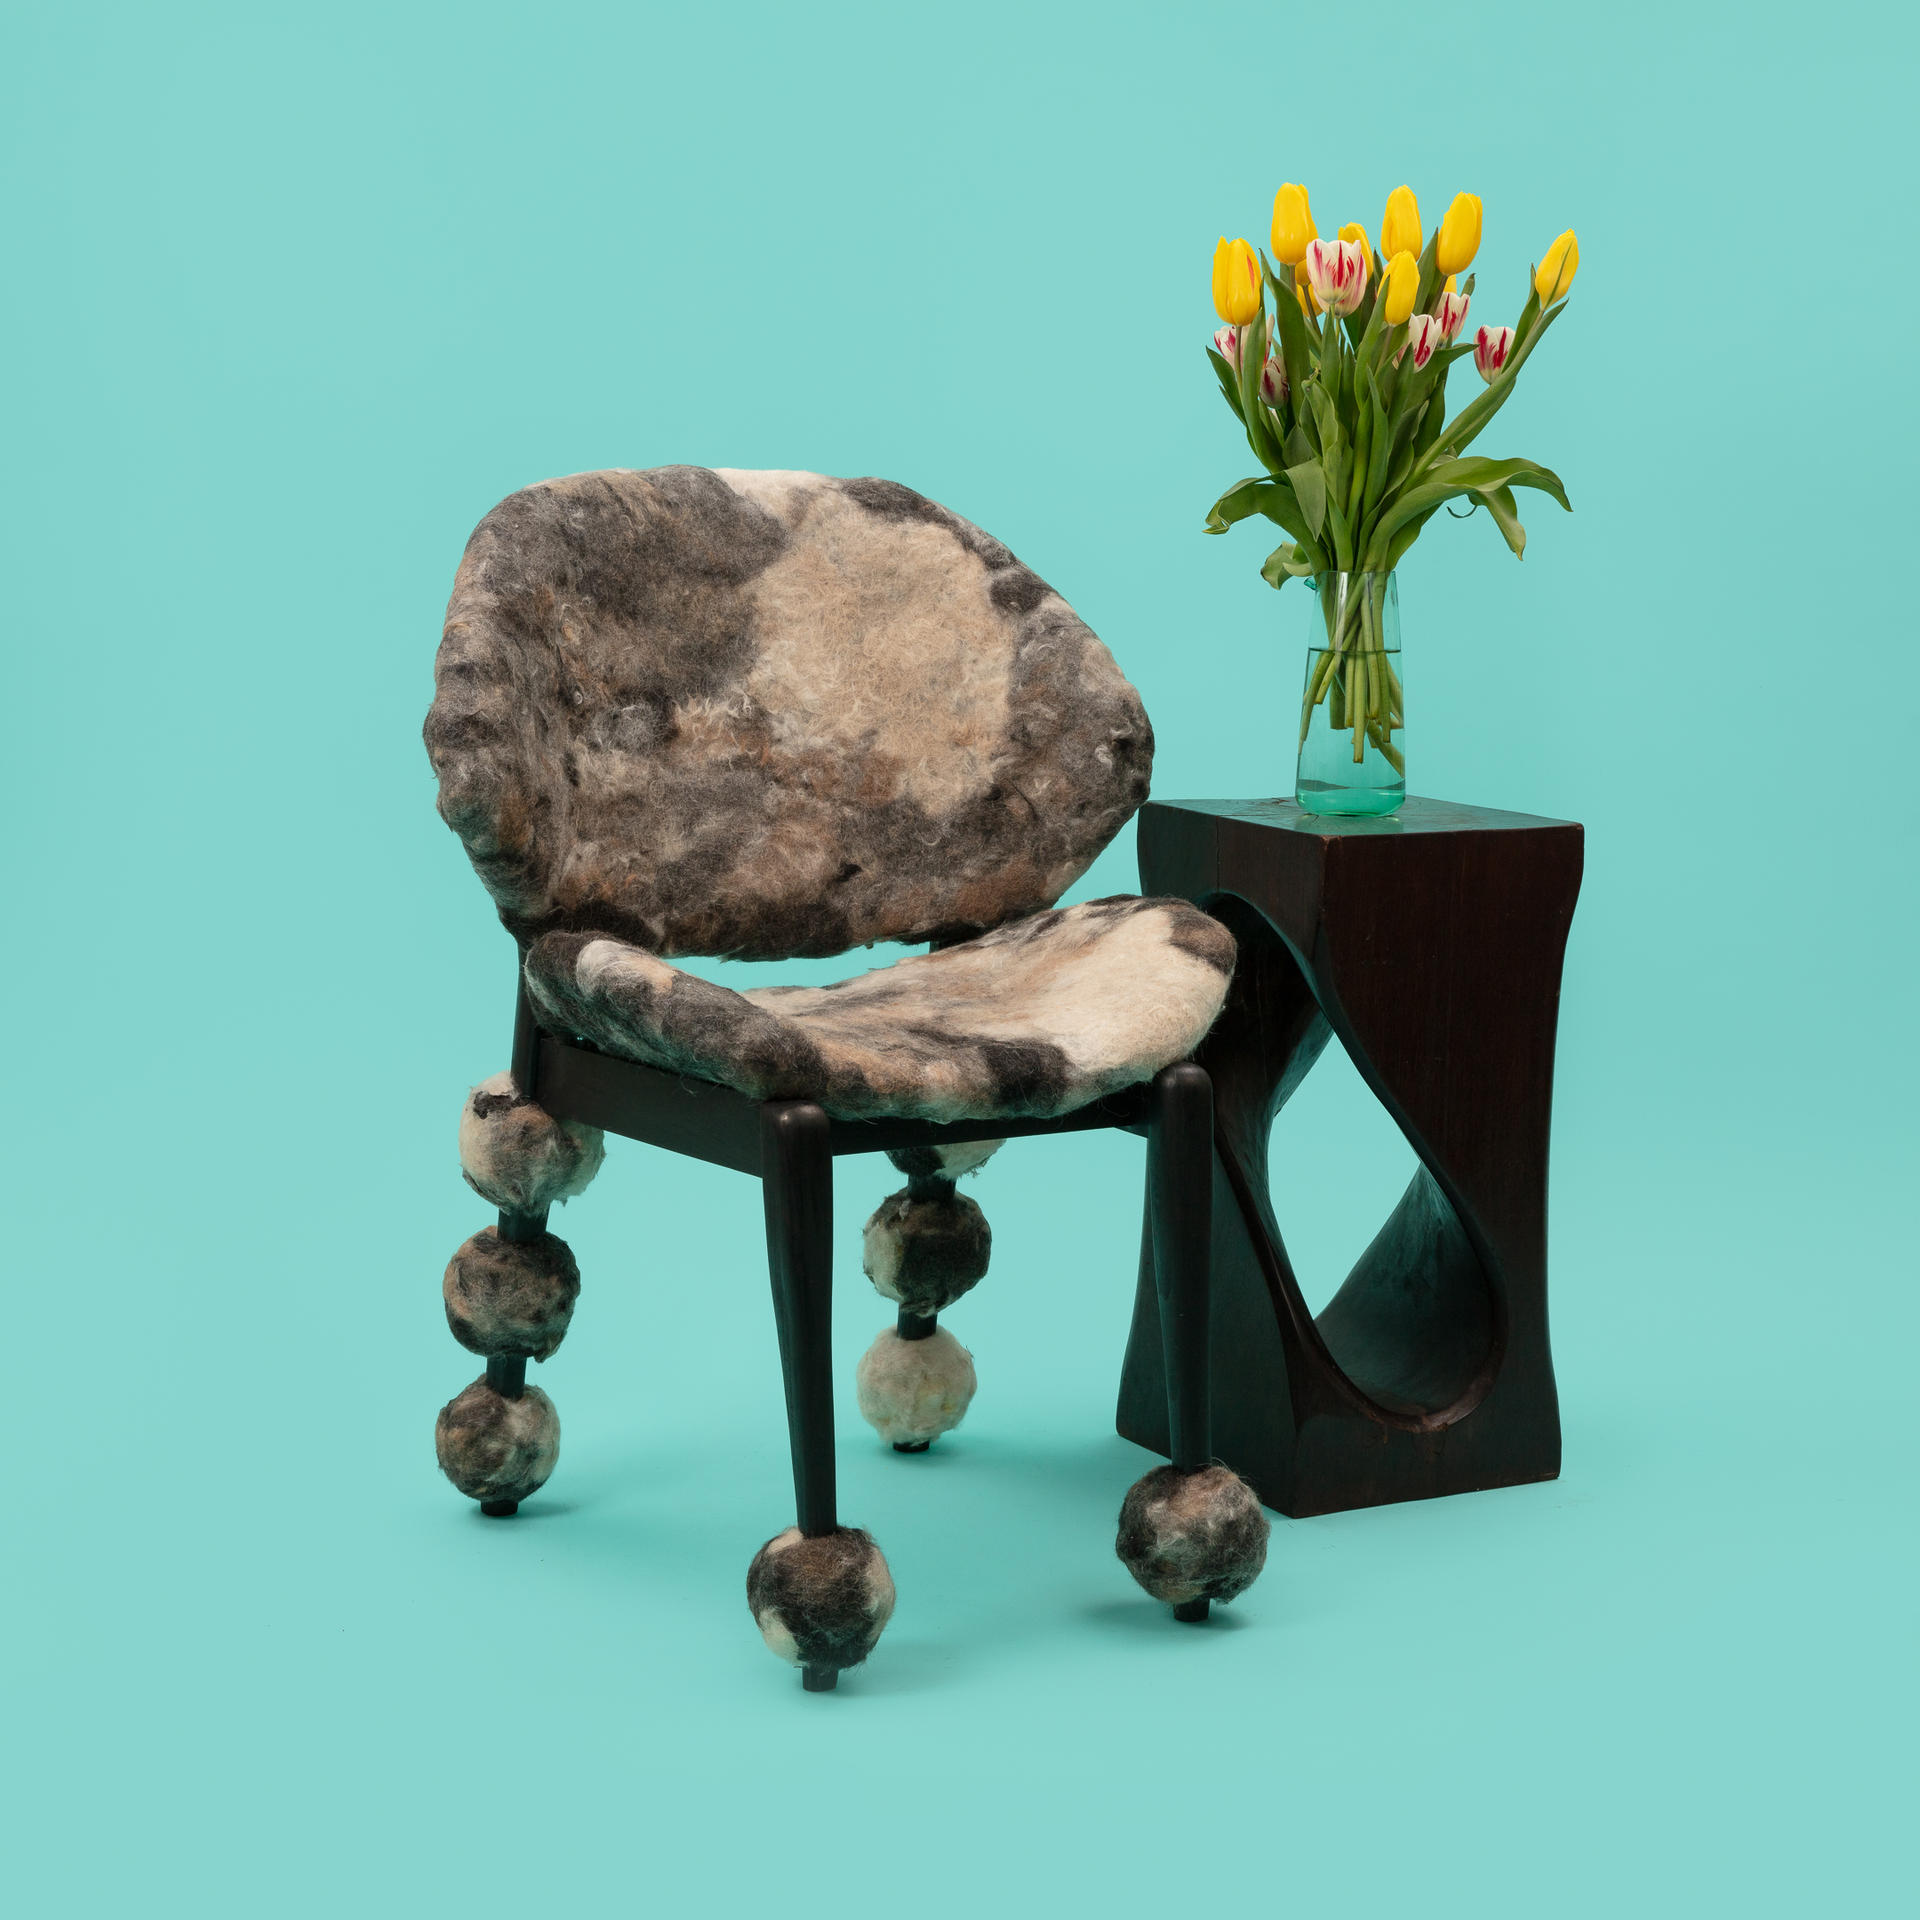 Wooden chair upholstered with handmade felt made from dog hair.